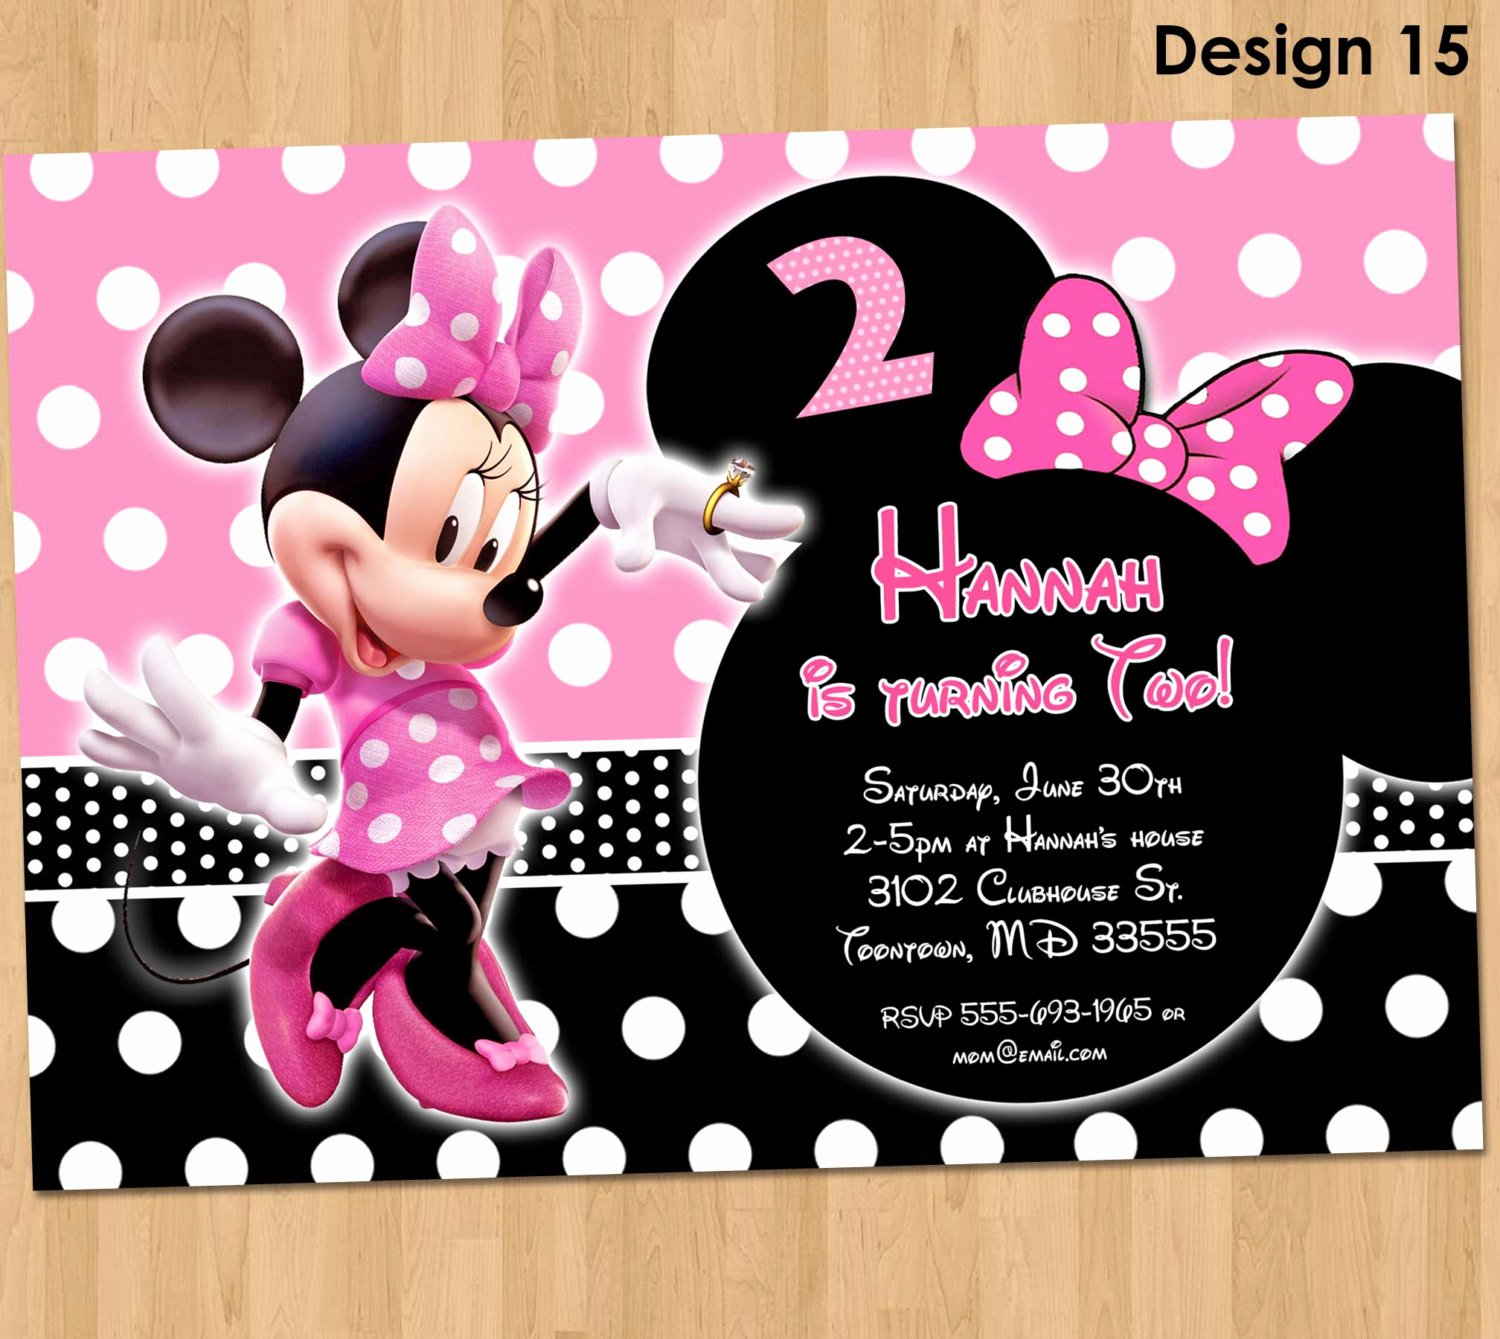 Minnie Mouse Birthday Invitation Beautiful Minnie Mouse Invitation Minnie Mouse Birthday Invitation